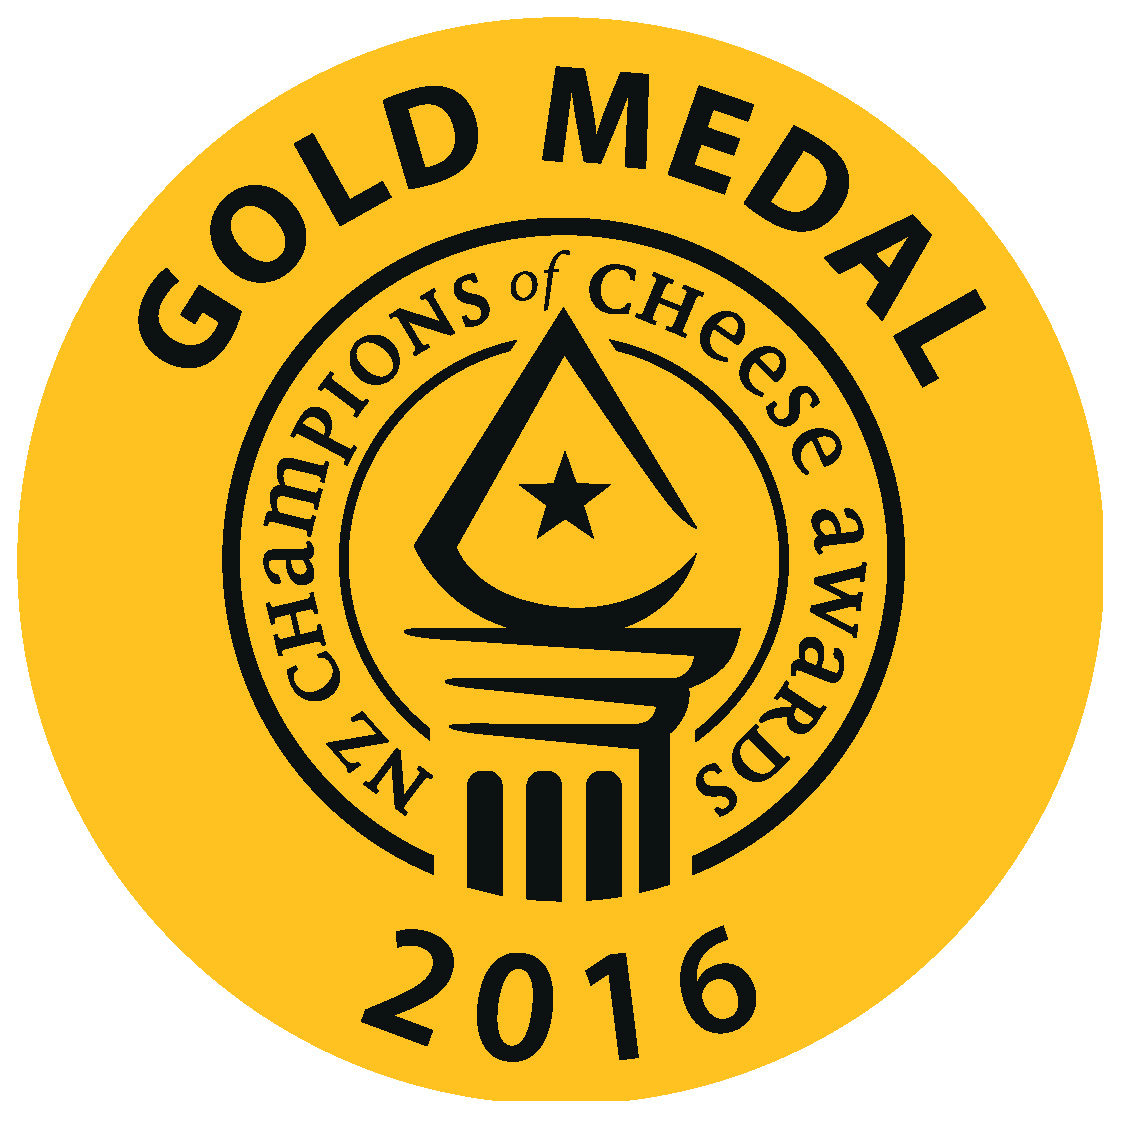 cheese medals hires G16.jpg